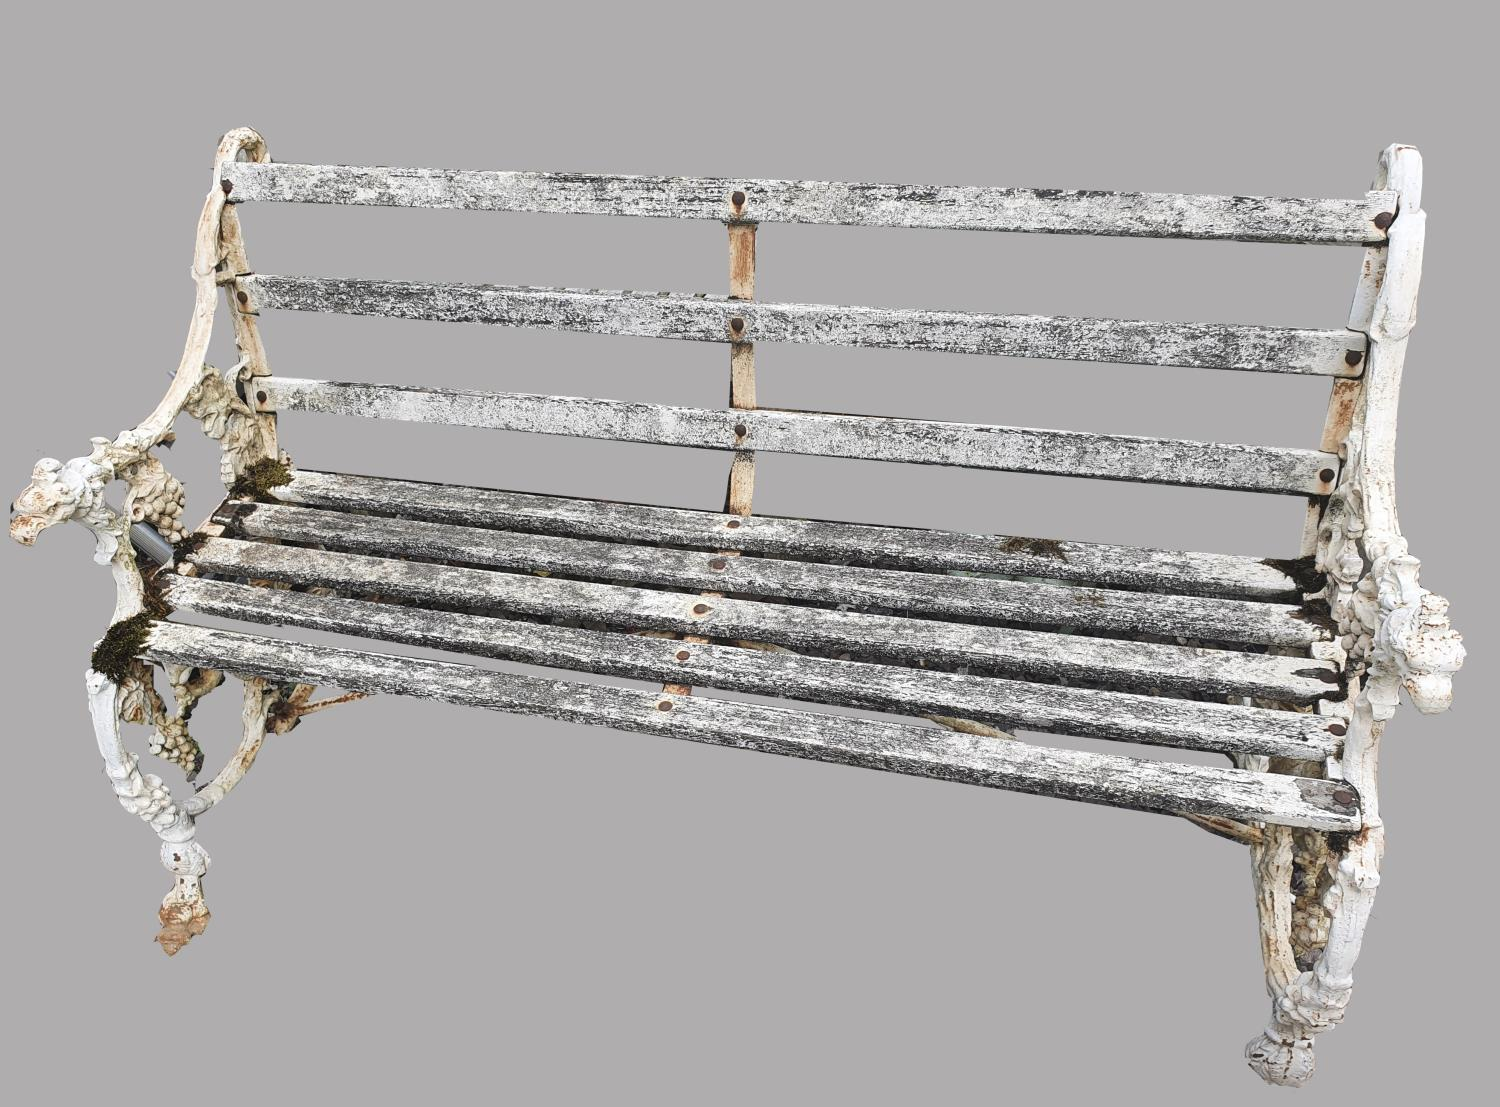 A VICTORIAN 'FURNESS RAILWAY' CAST IRON GARDEN BENCH. The ends cast with squirrels eating grapes,